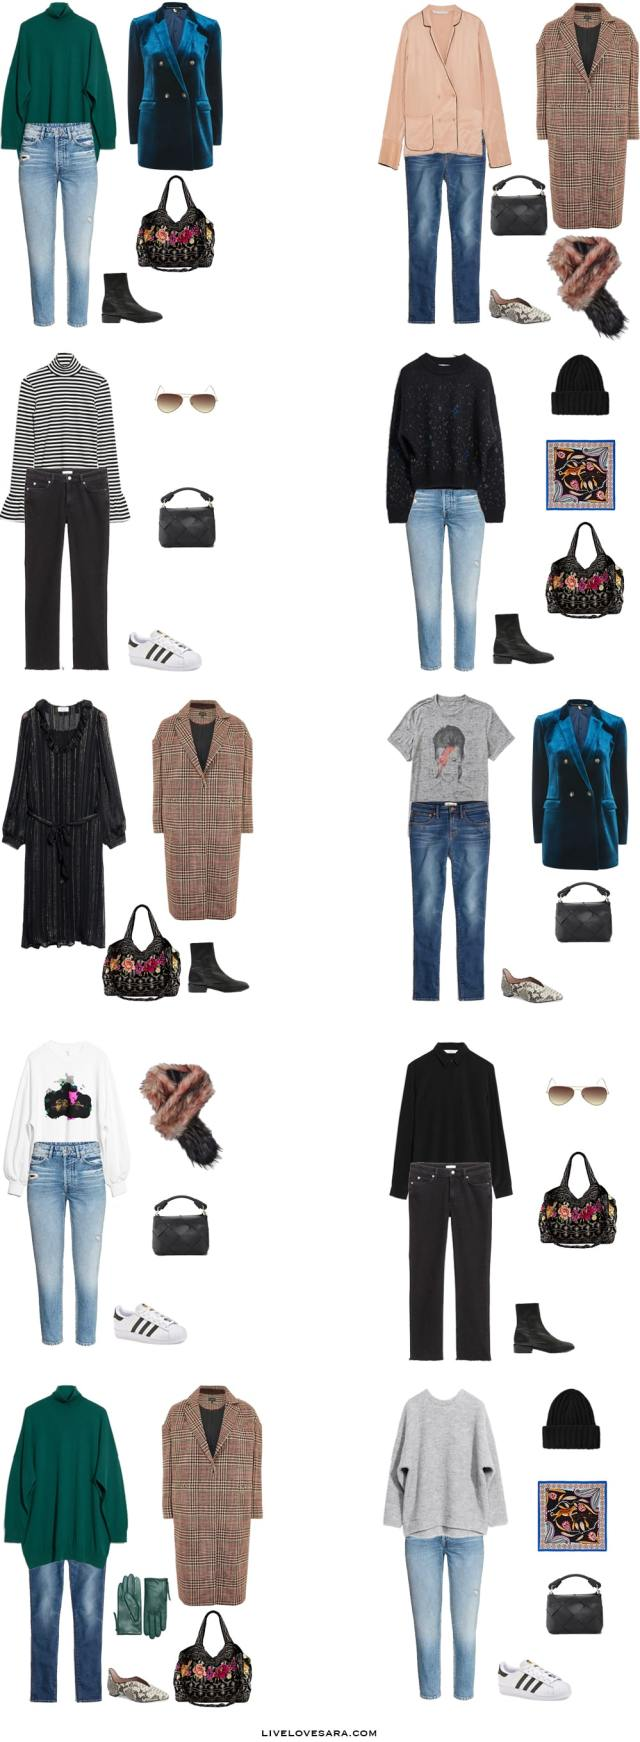 What to Pack for Ghent, Belgium Packing Light List Outfit Options 1-10 #packinglight #travellight #packinglist #travel #capsule #capsulewardrobe #livelovesara